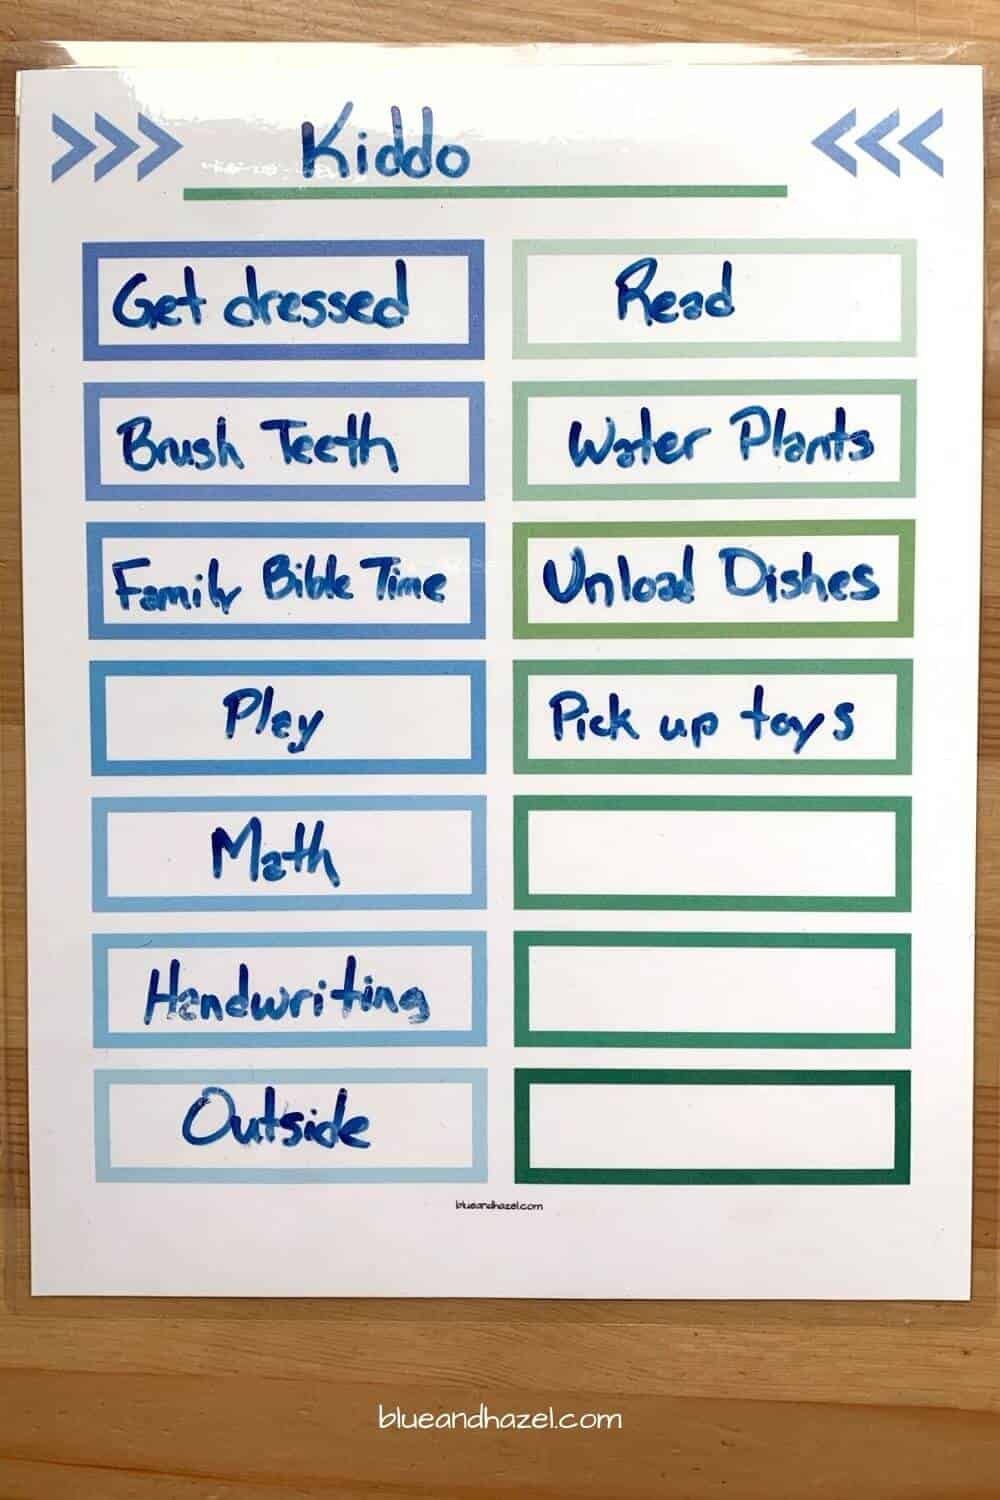 chores list for 7 year old boy that includes homeschool subjects